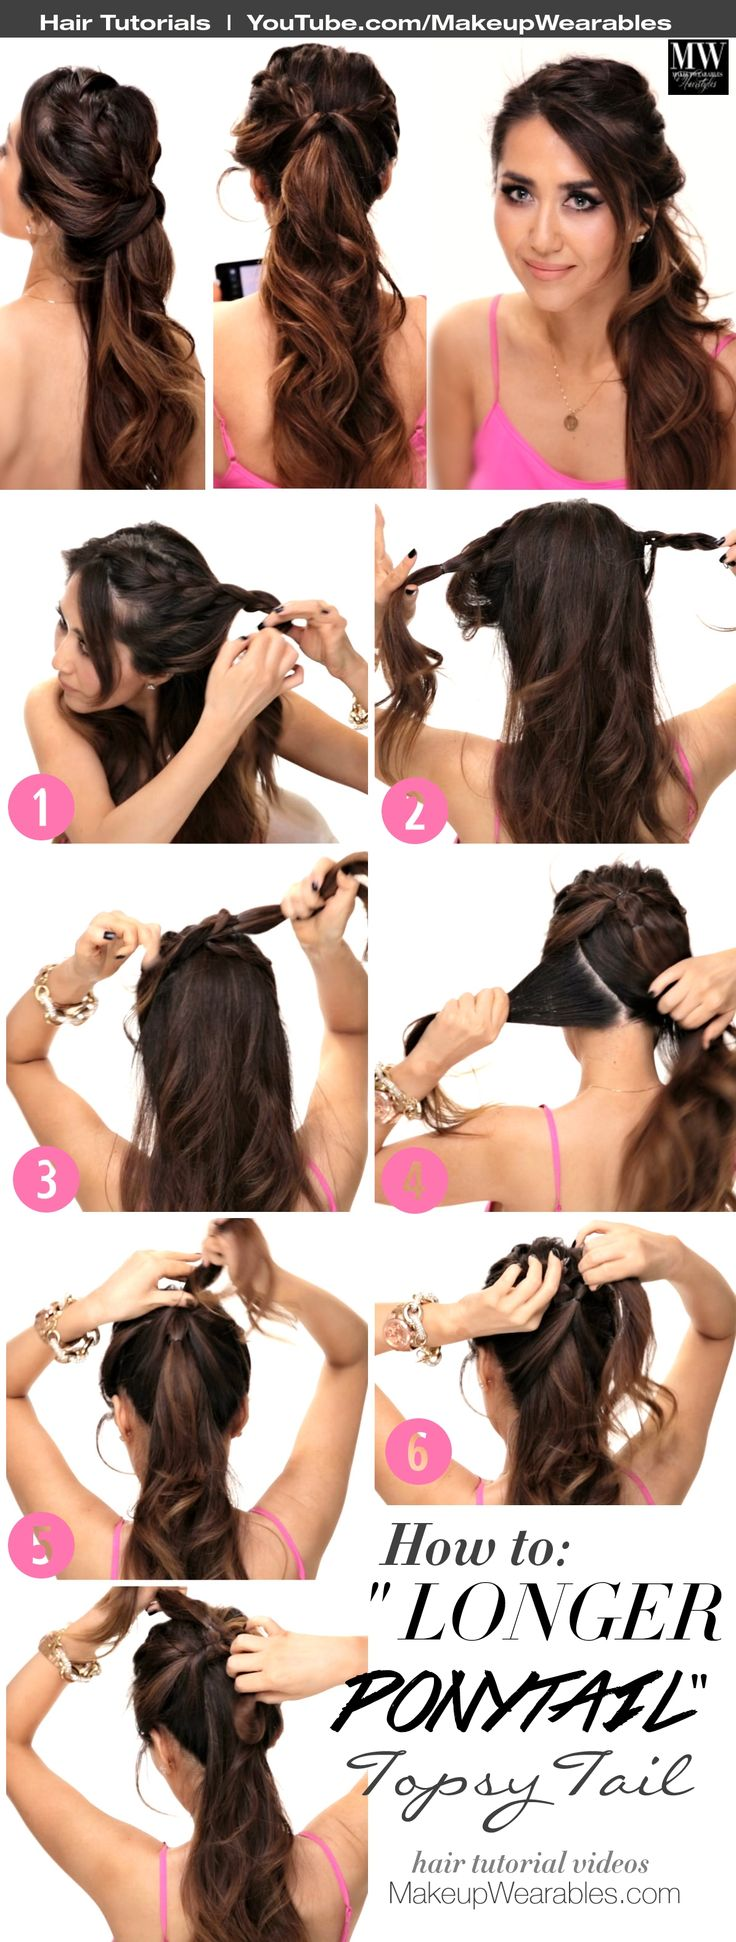 """How to """"Longer-Ponytail"""" Topsy Tail #Hairstyles 